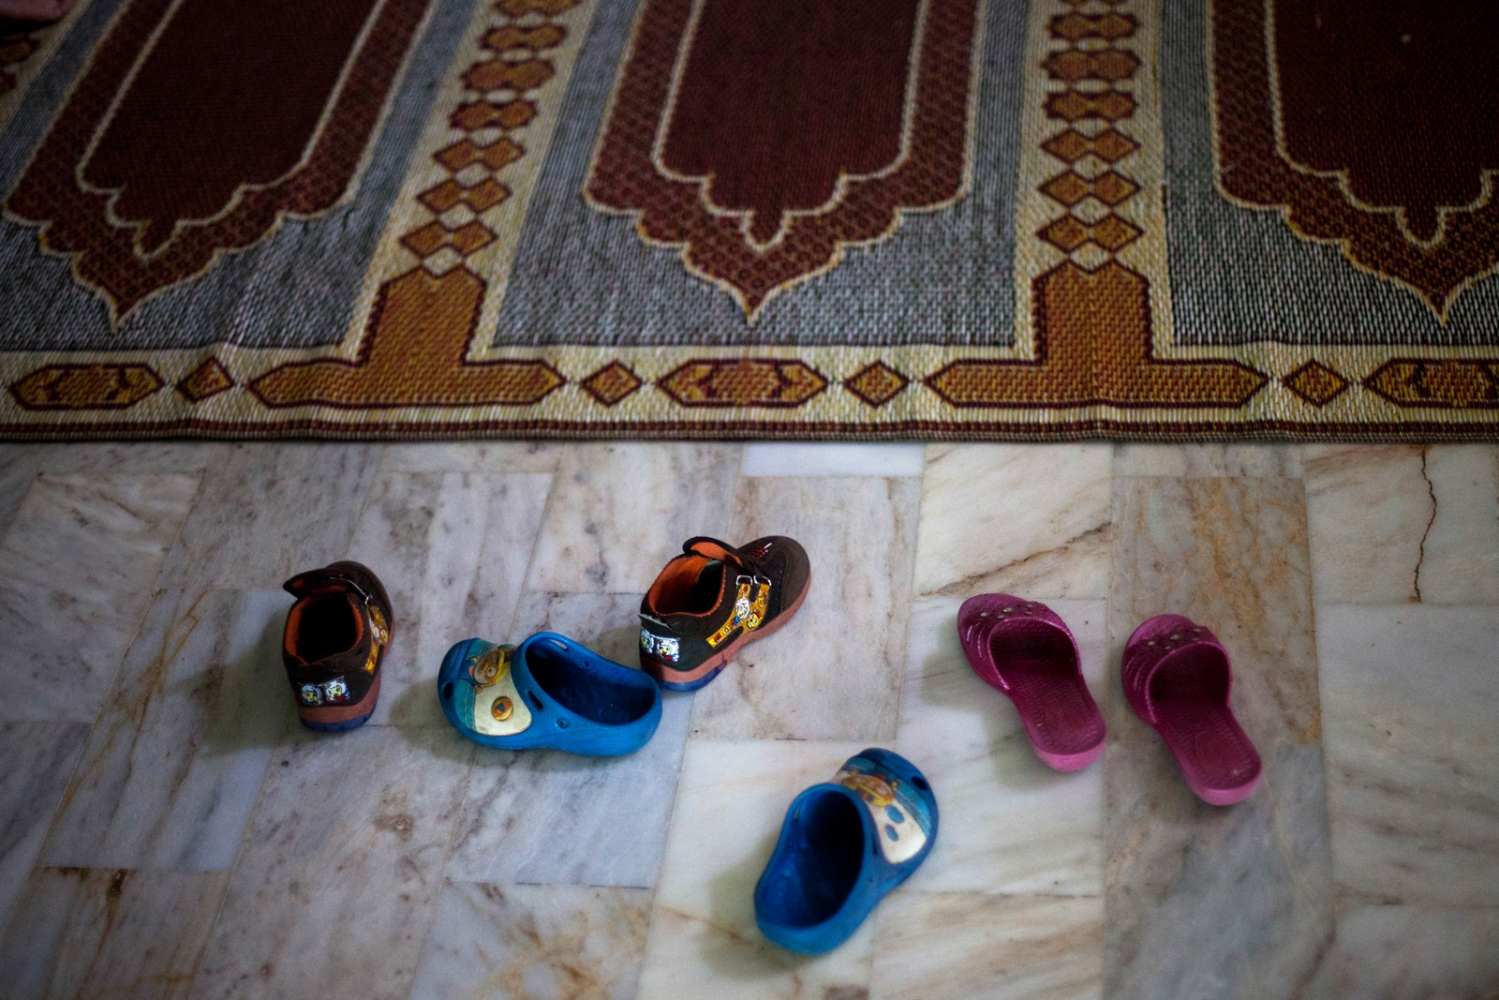 Shoes belonging to Pakistani children and shelter residents lie beside a prayer mat at the Dastak women's shelter in Lahore on February 20, 2013.